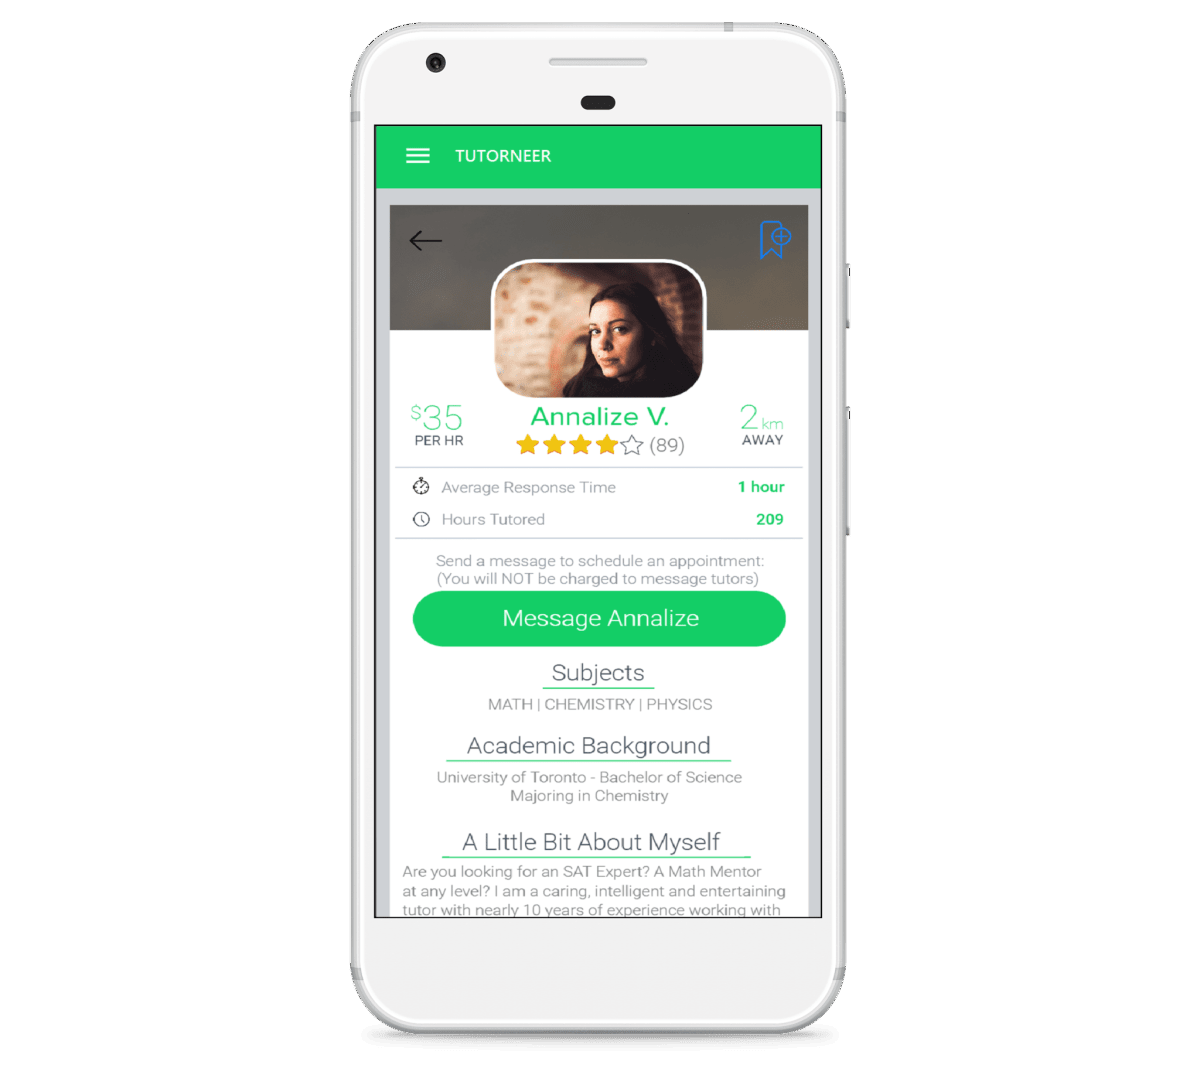 Read detailed profiles for on-demand tutors in Toronto with the Tutorneer app